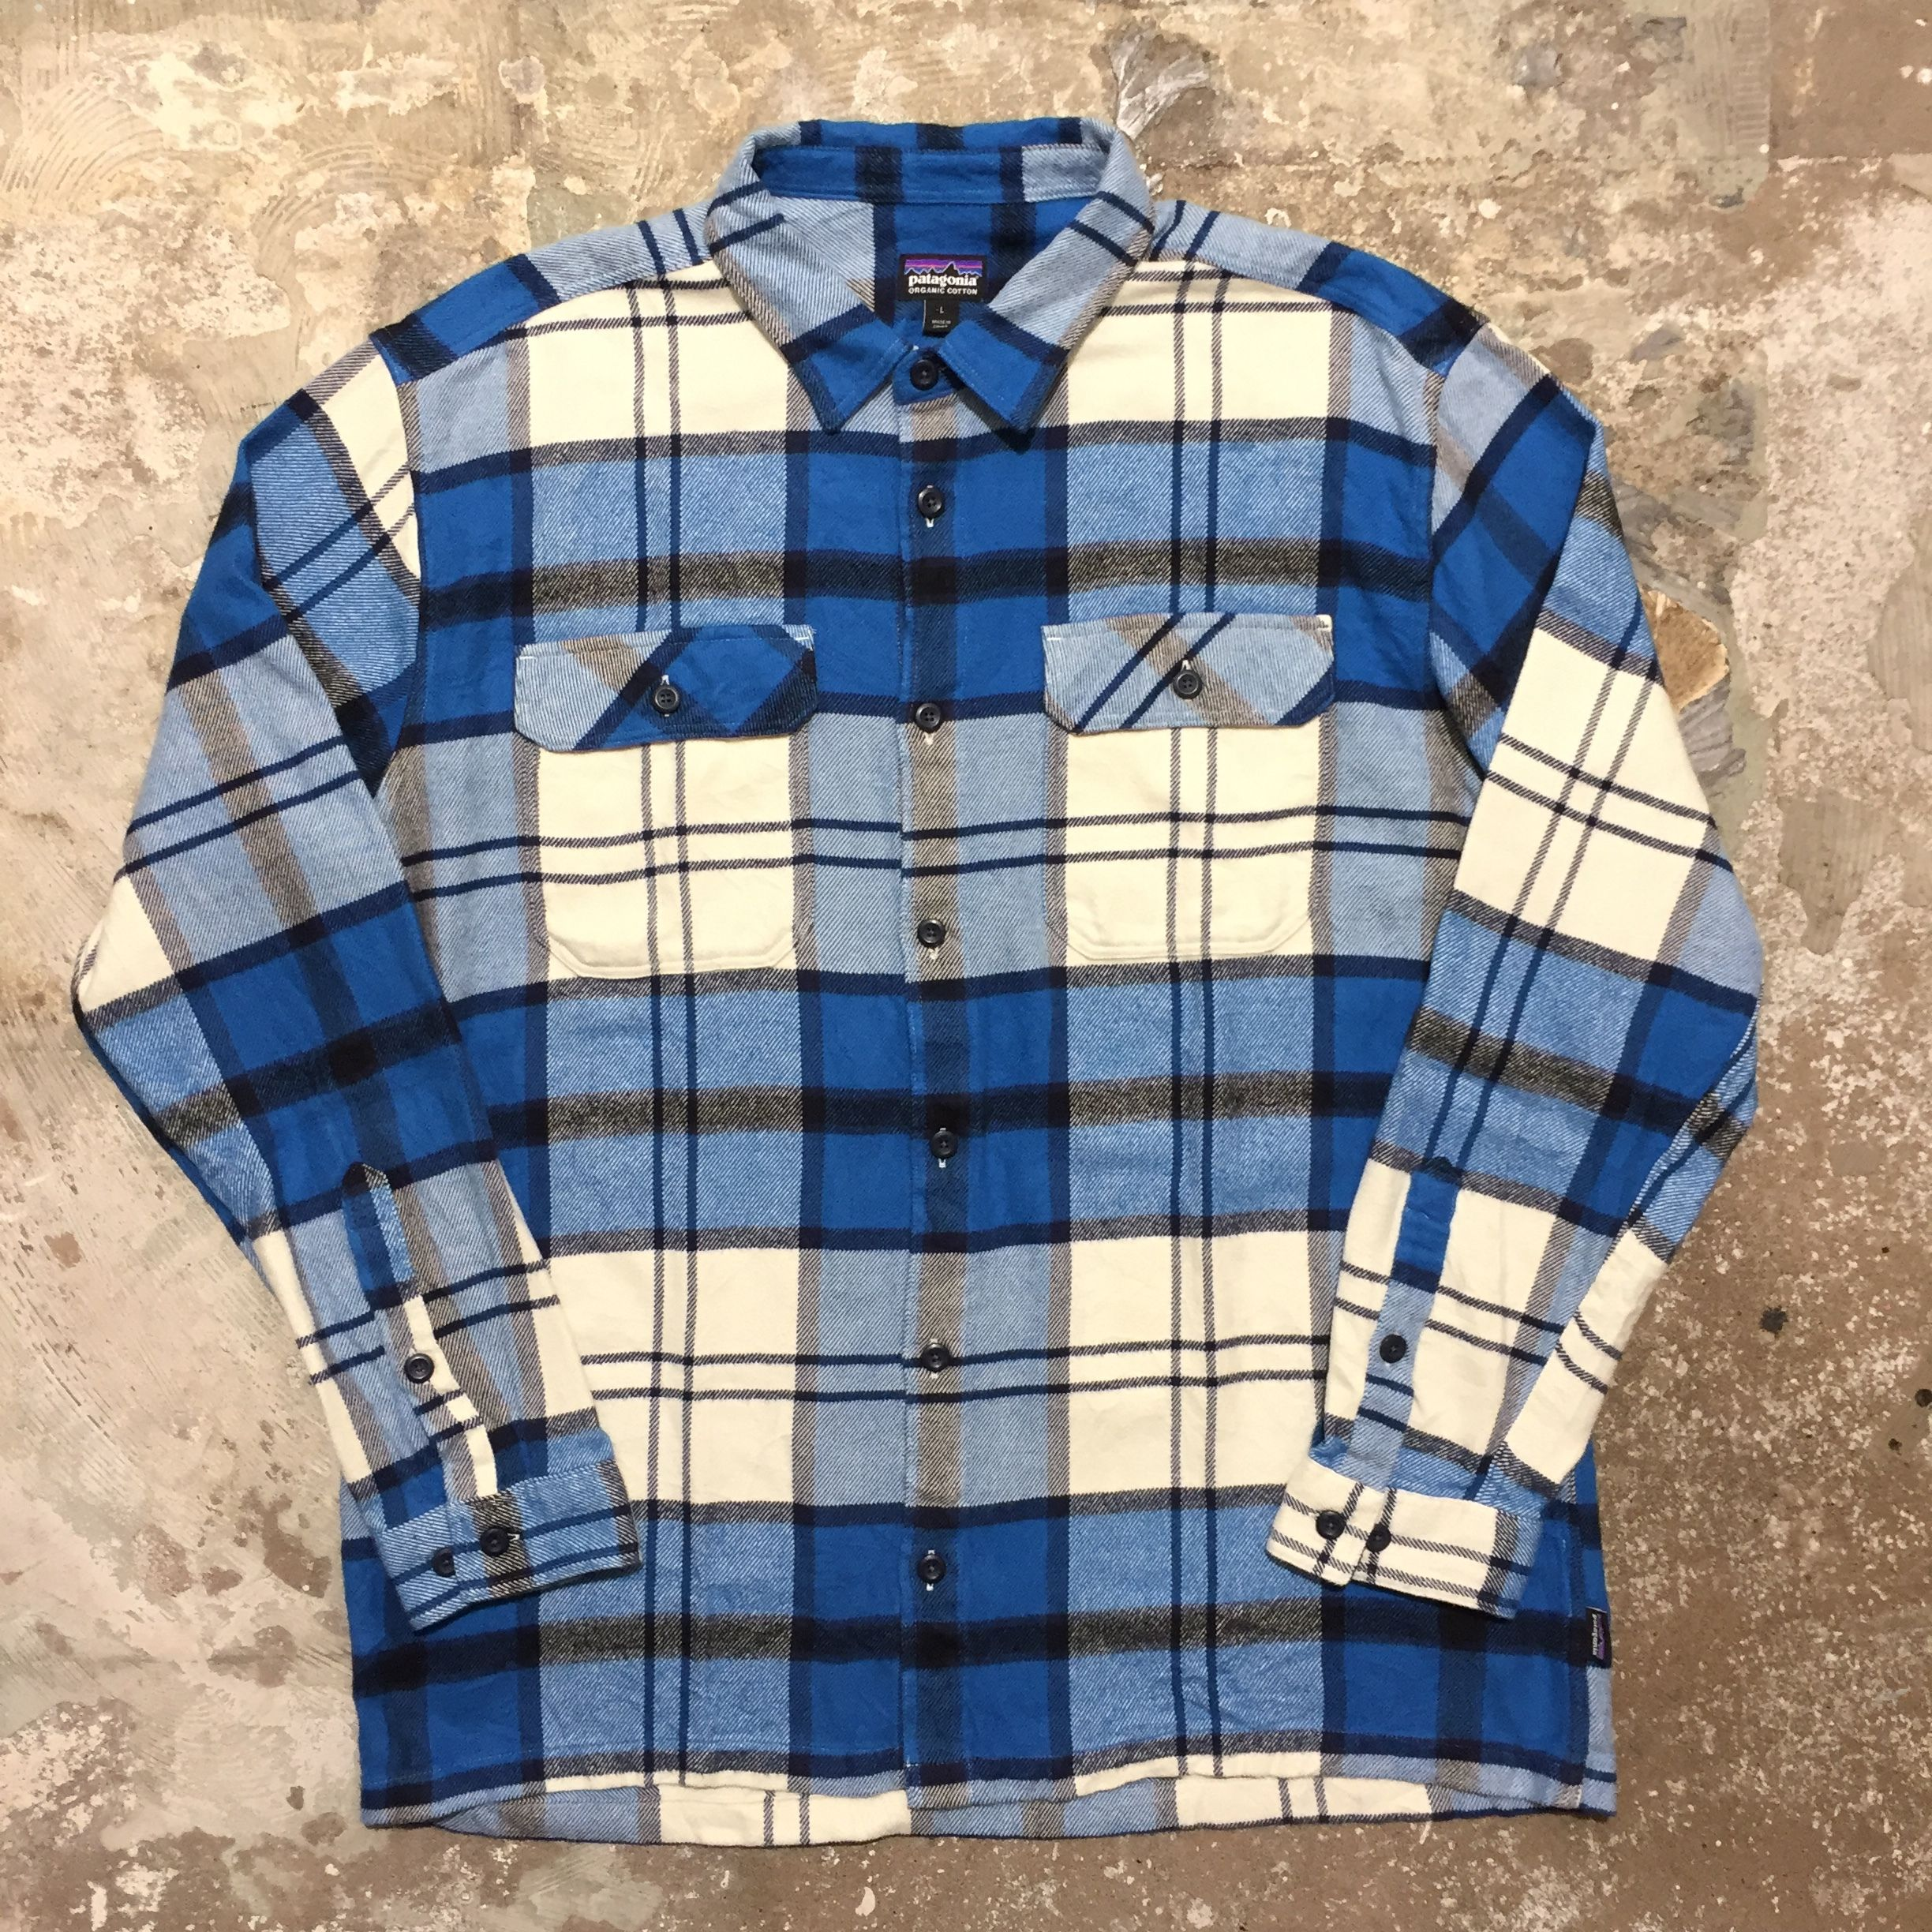 Patagonia Heavy Flannel Shirt BLUE×NAVY×WHITE